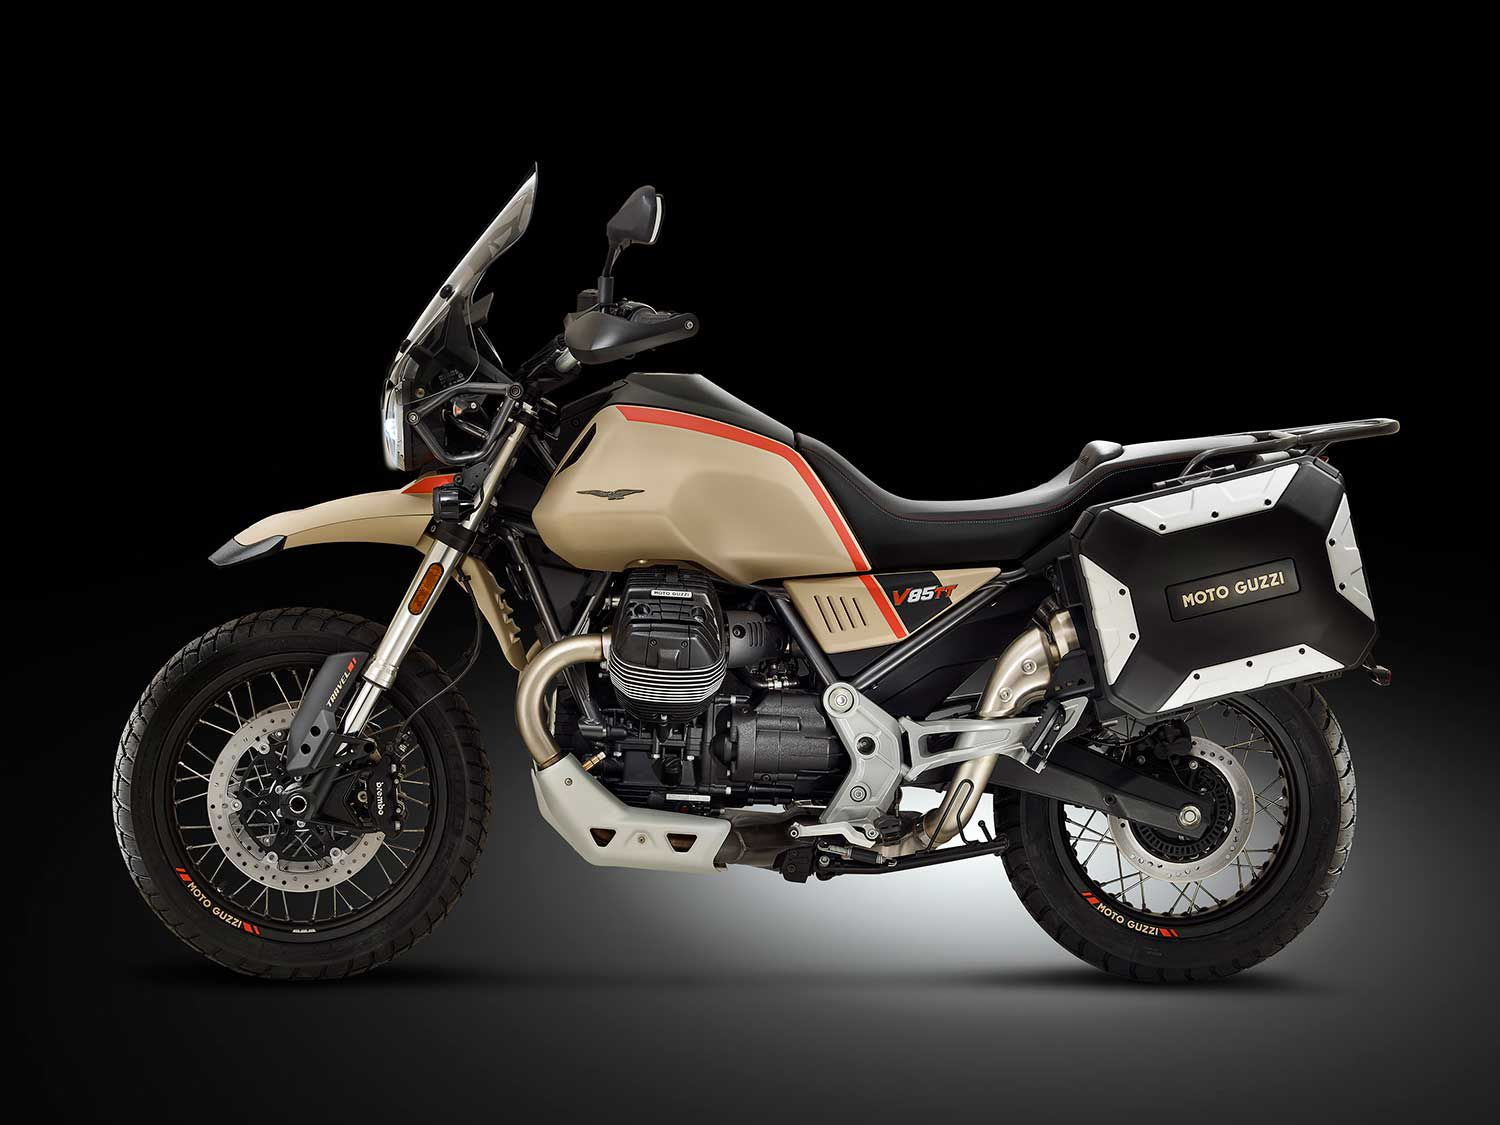 <h2>2020 Moto Guzzi V85 TT Travel</h2> </br> Panniers, a high windshield, and heated hand grips come standard on the 2020 Moto Guzzi V85 TT Travel.